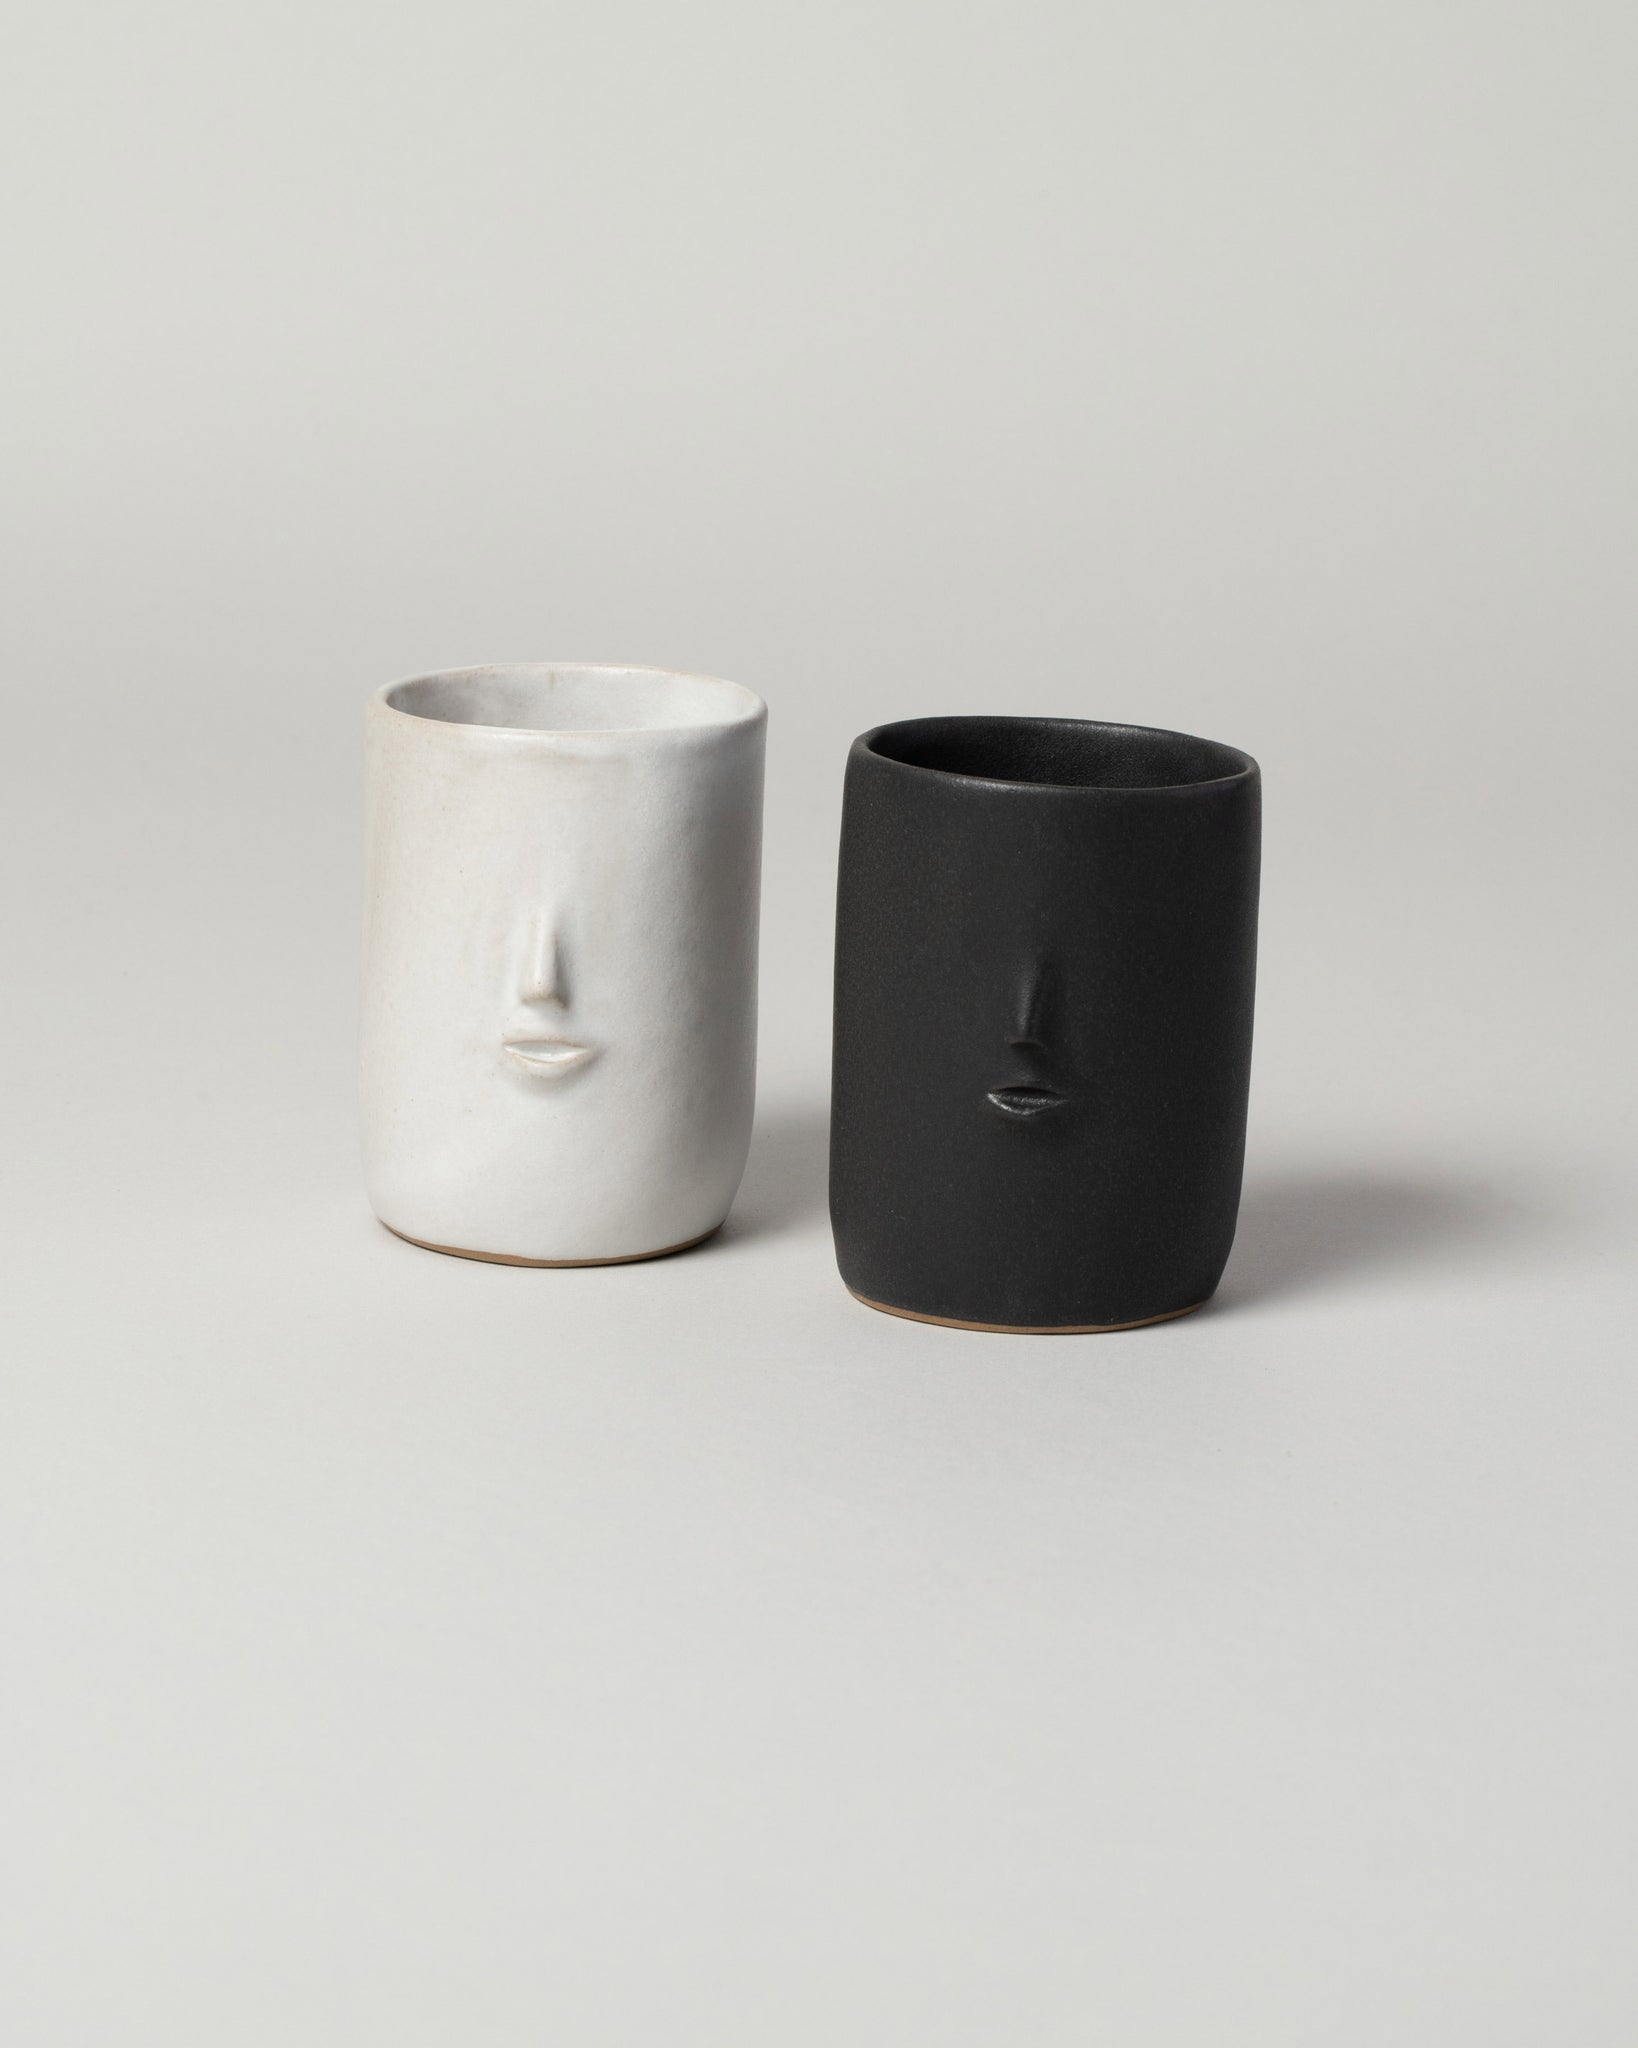 Rami Kim Mini Face Tumbler in matte black and matte white